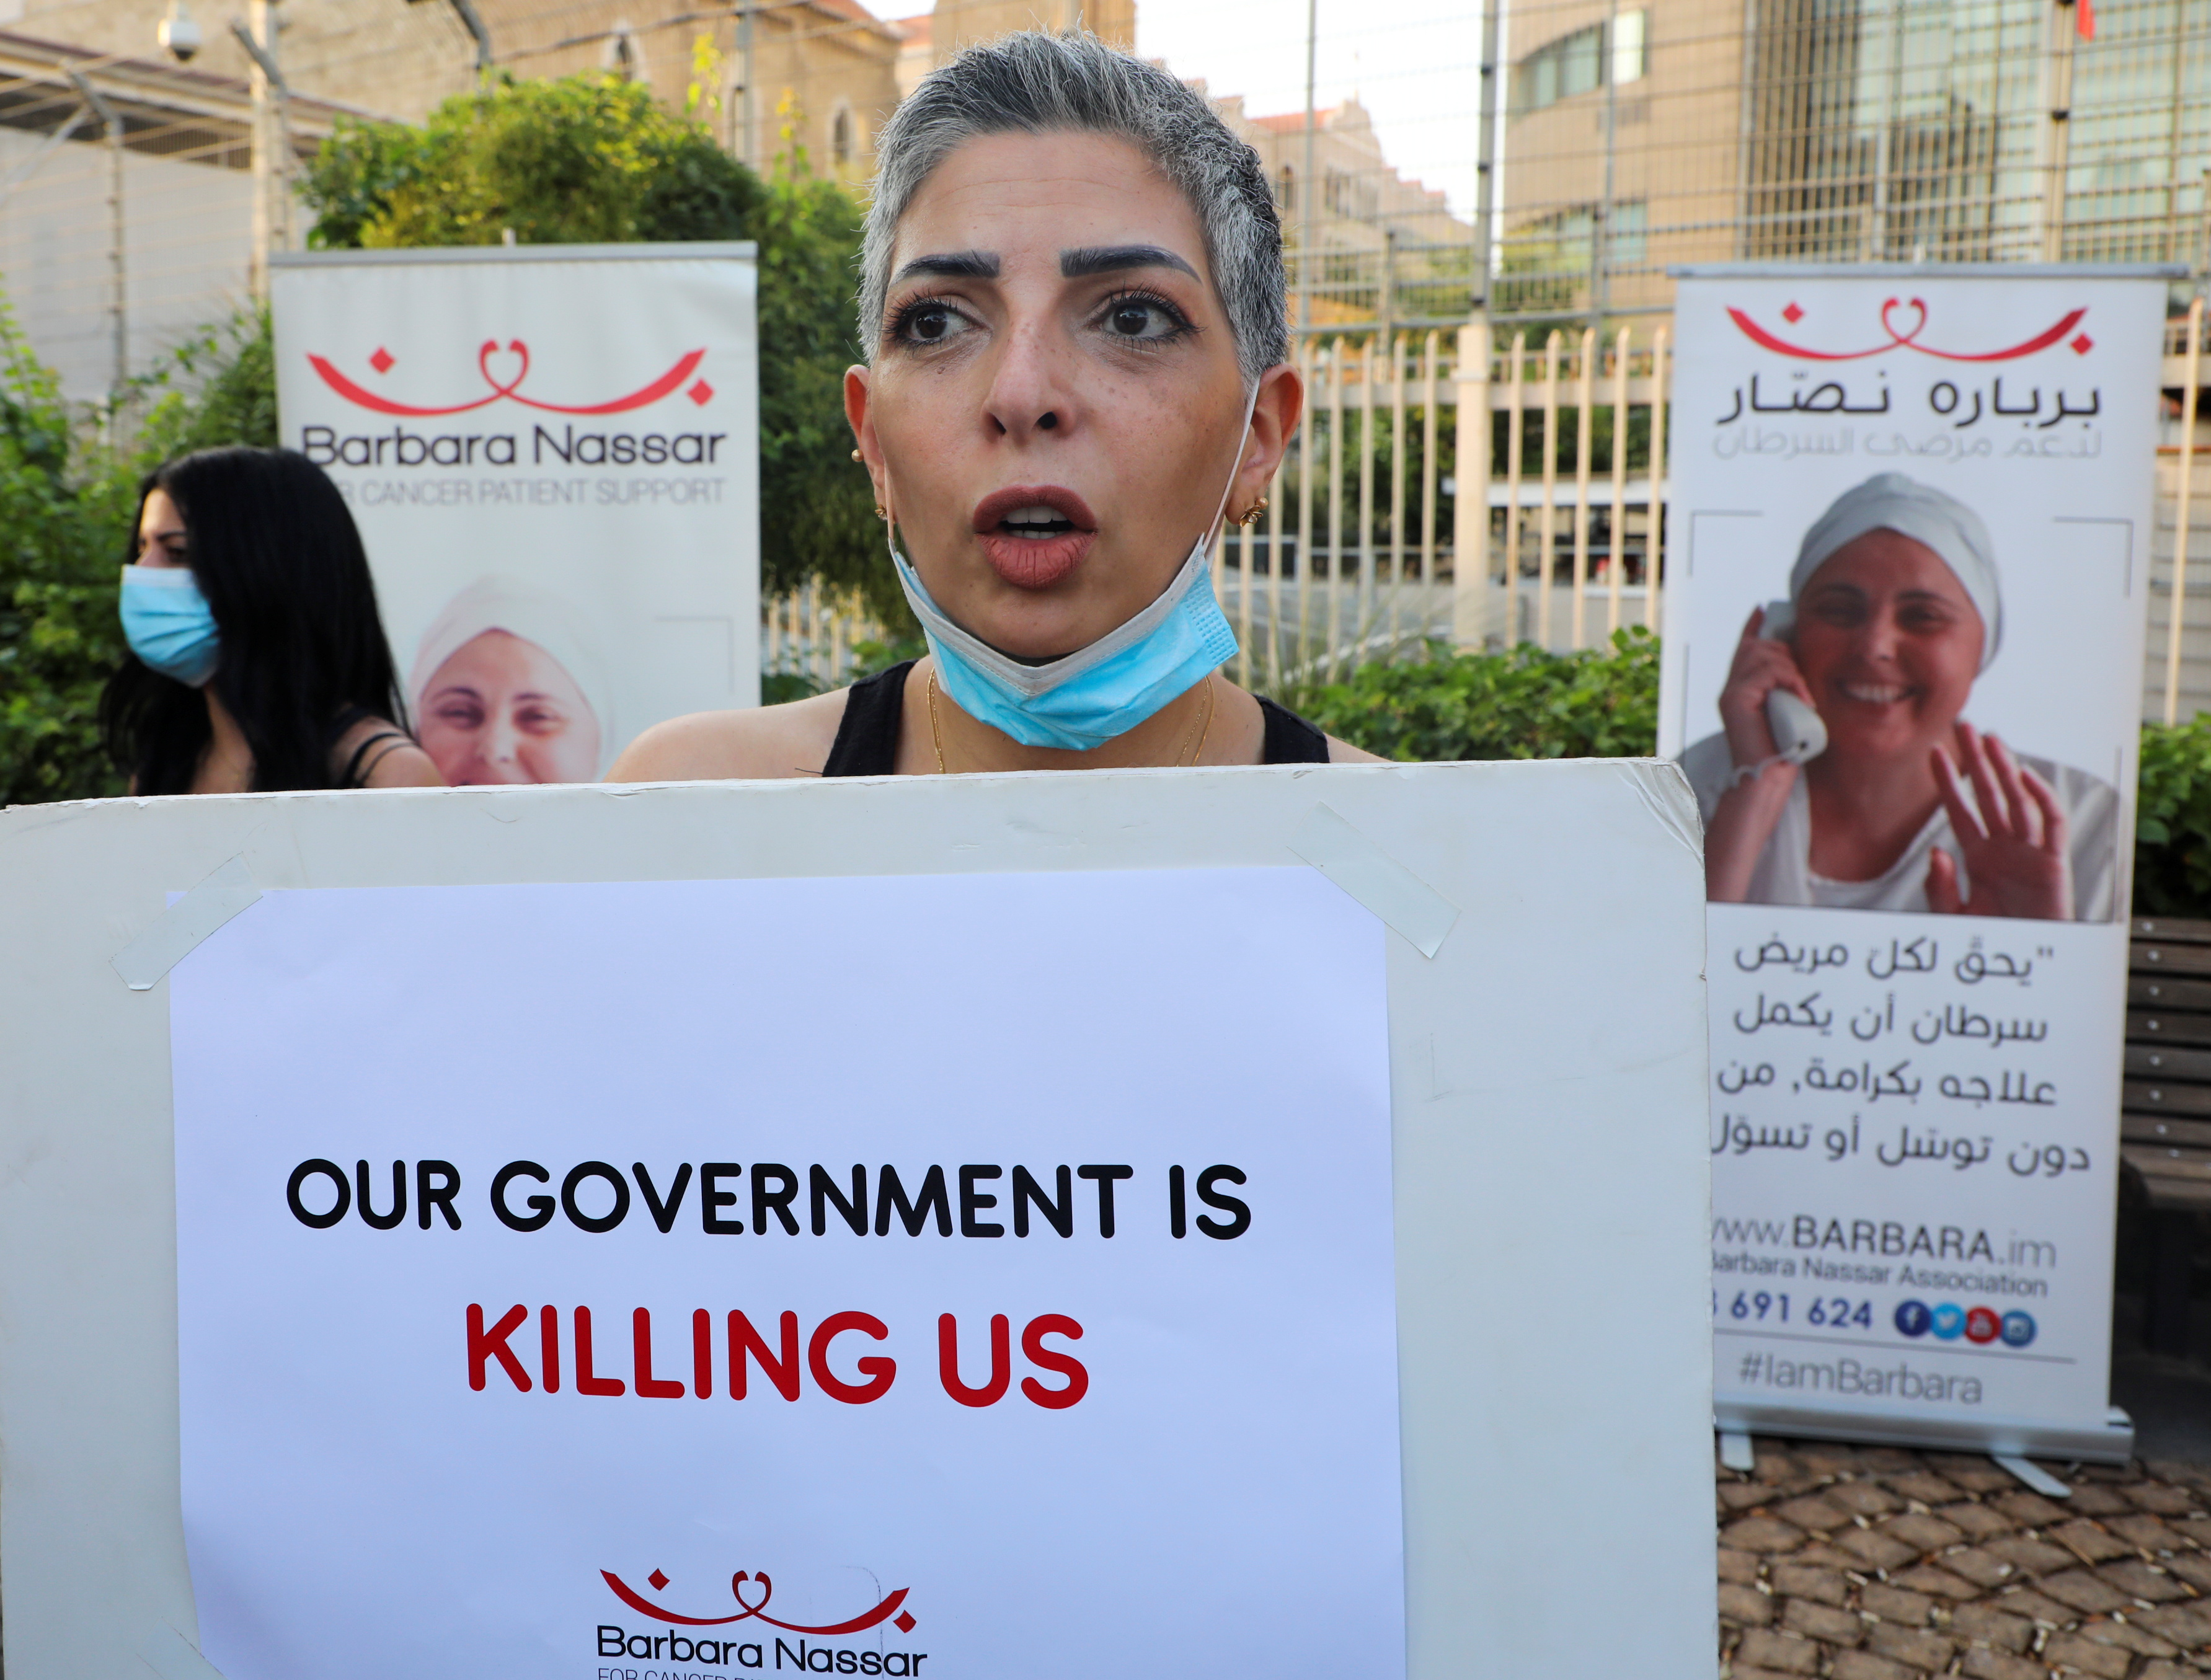 A cancer patient holds a sign, during a sit-in demonstration as shortages of cancer medications spread, in front of the U.N. headquarters in Beirut, Lebanon August 26, 2021. Picture taken August 26, 2021. REUTERS/Mohamed Azakir